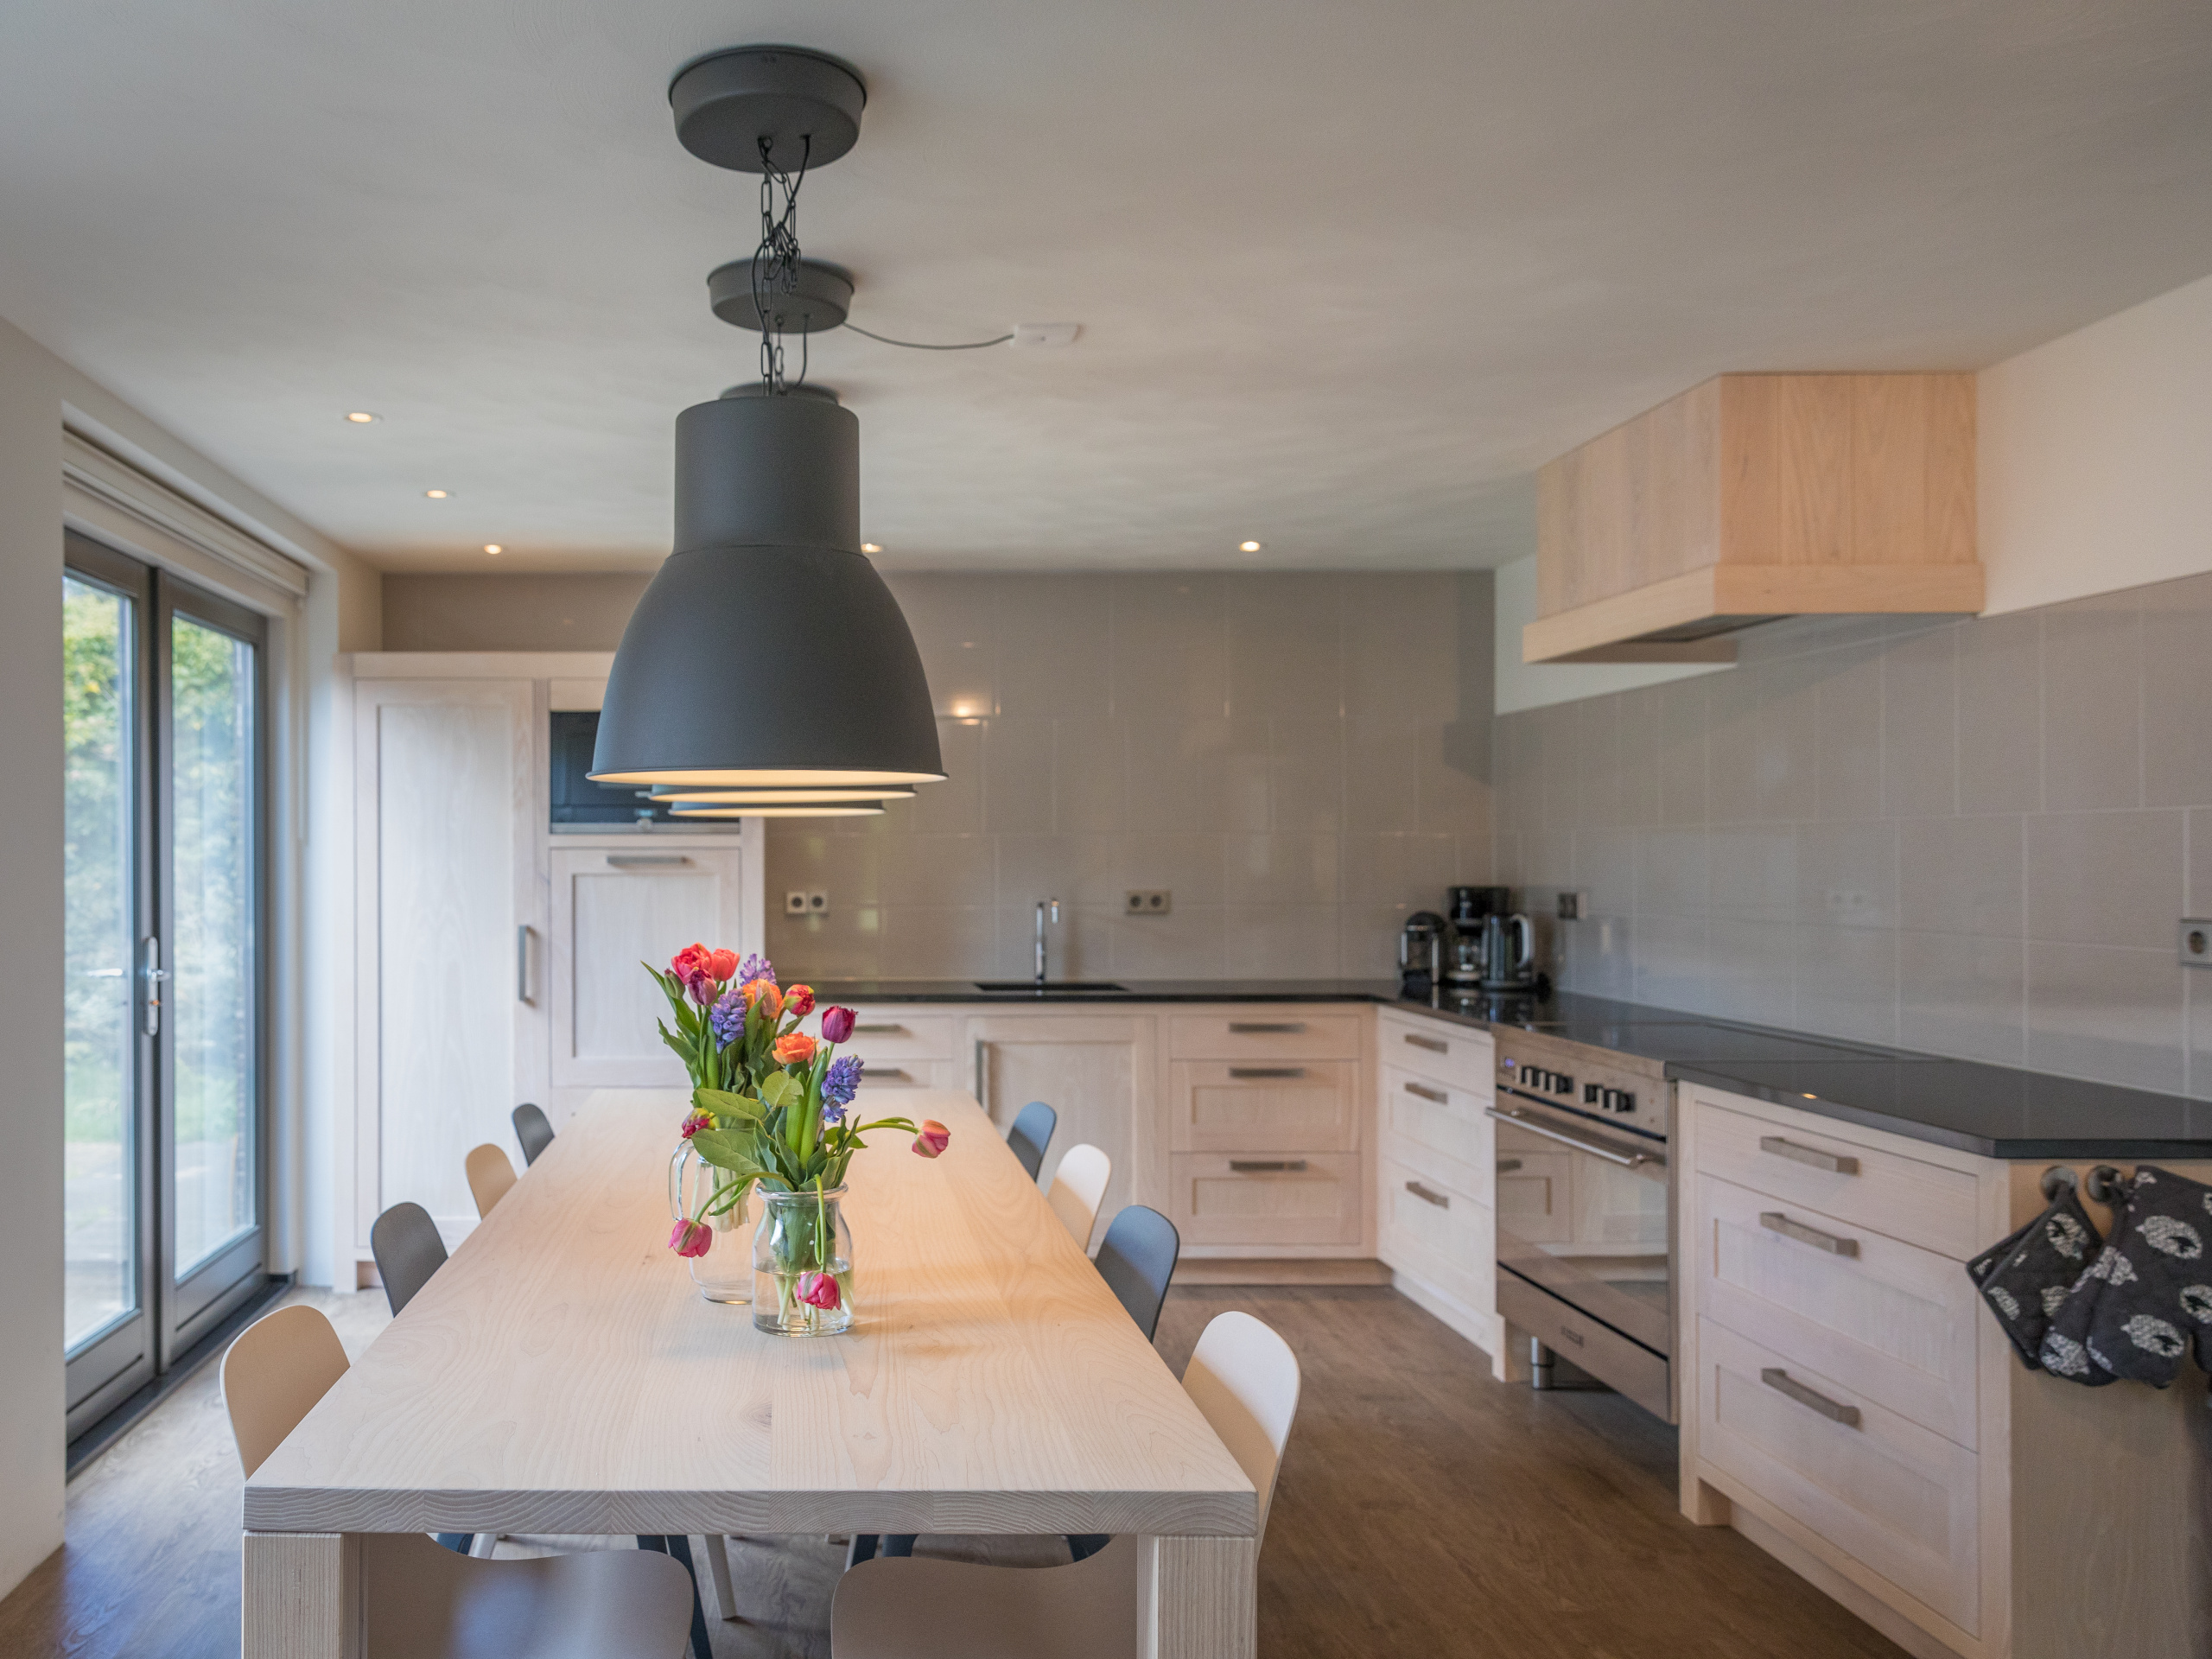 Spacious & comfortable holiday home ideal for families, quietly located on the edge of De Koog